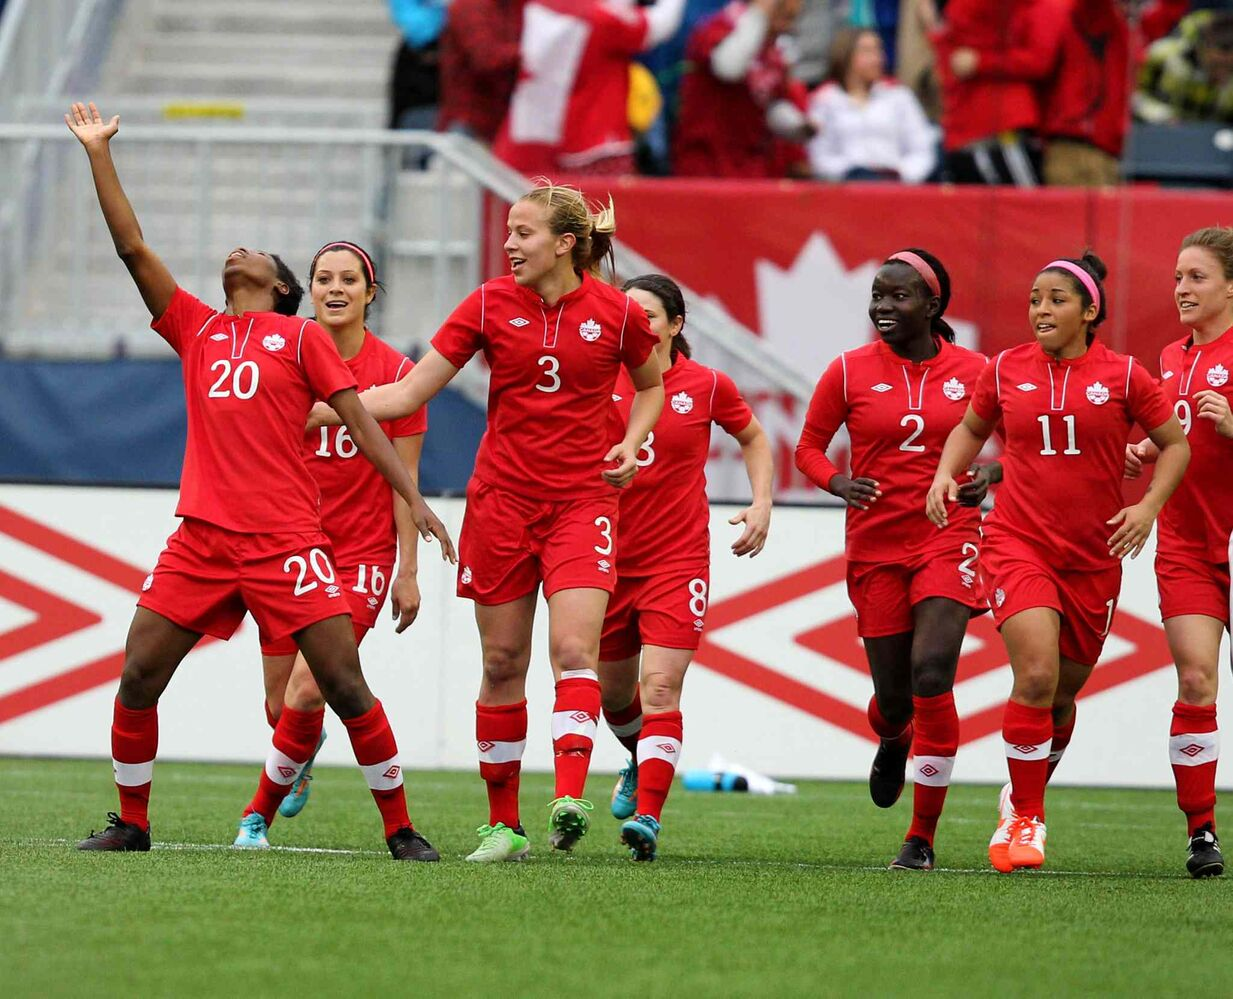 Kadeisha Buchanan (#20), left, celebrates her goal with Canada teammates during the first half of Thursday's soccer game against Team USA.  (Ruth Bonneville / Winnipeg Free Press)